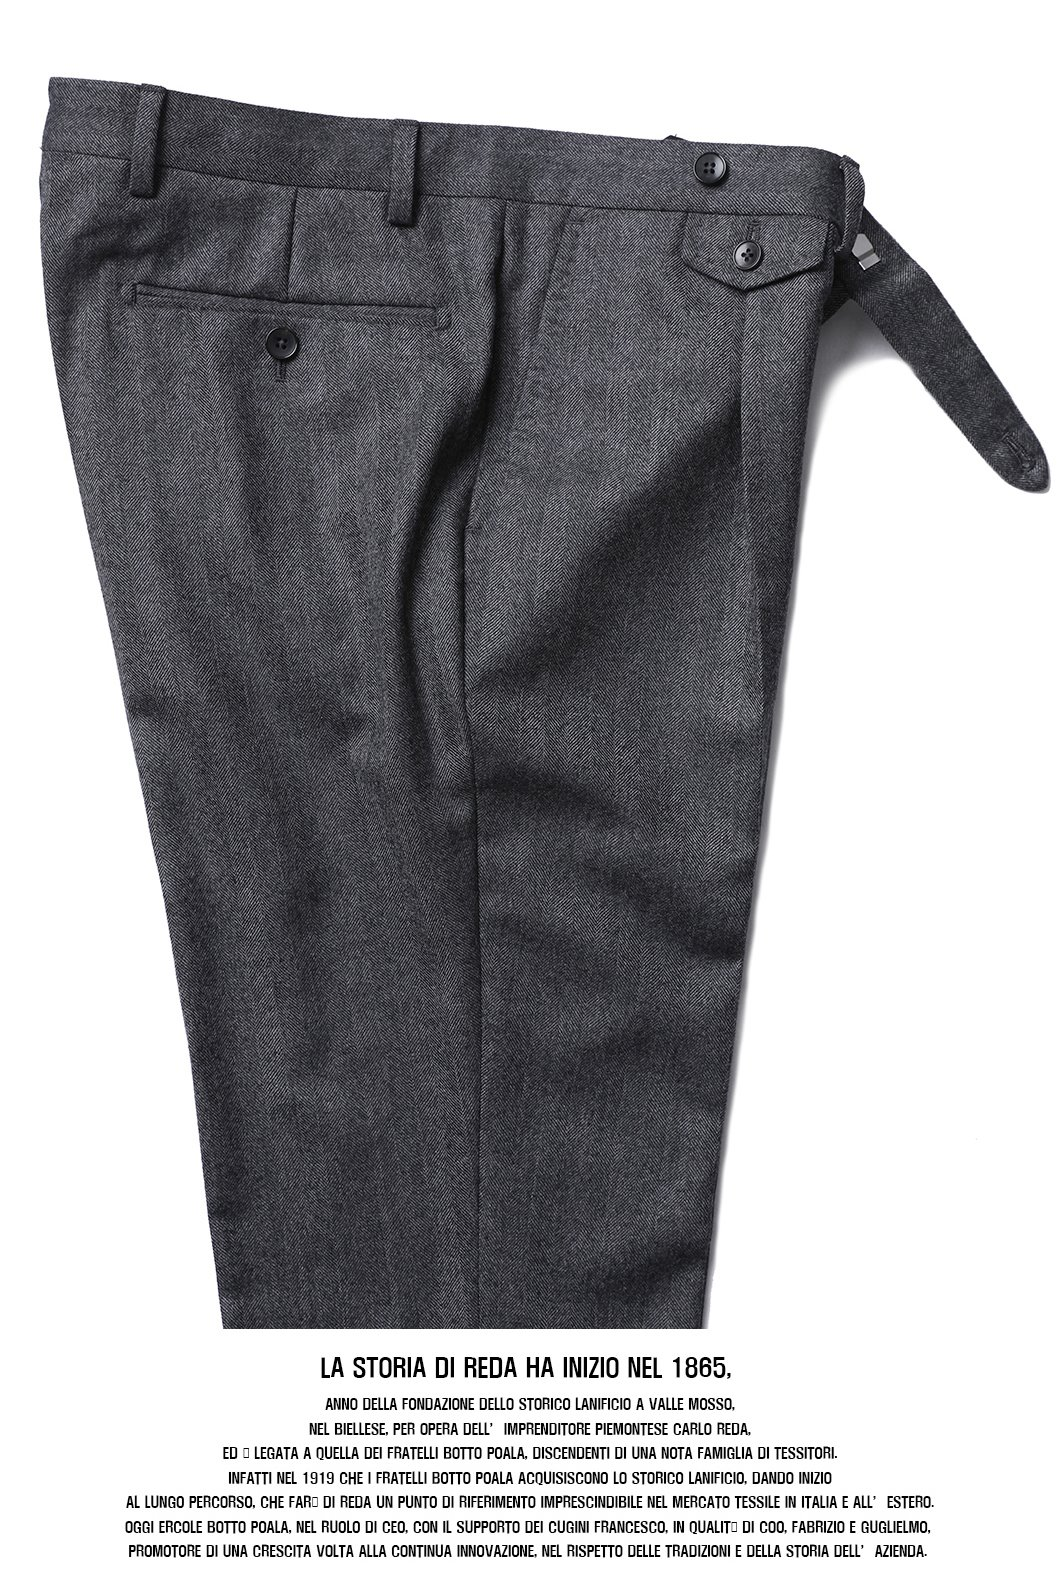 514 ITALY 1865 Herringbone PANTS-MIDDLE GRAY가을,겨울 추천팬츠